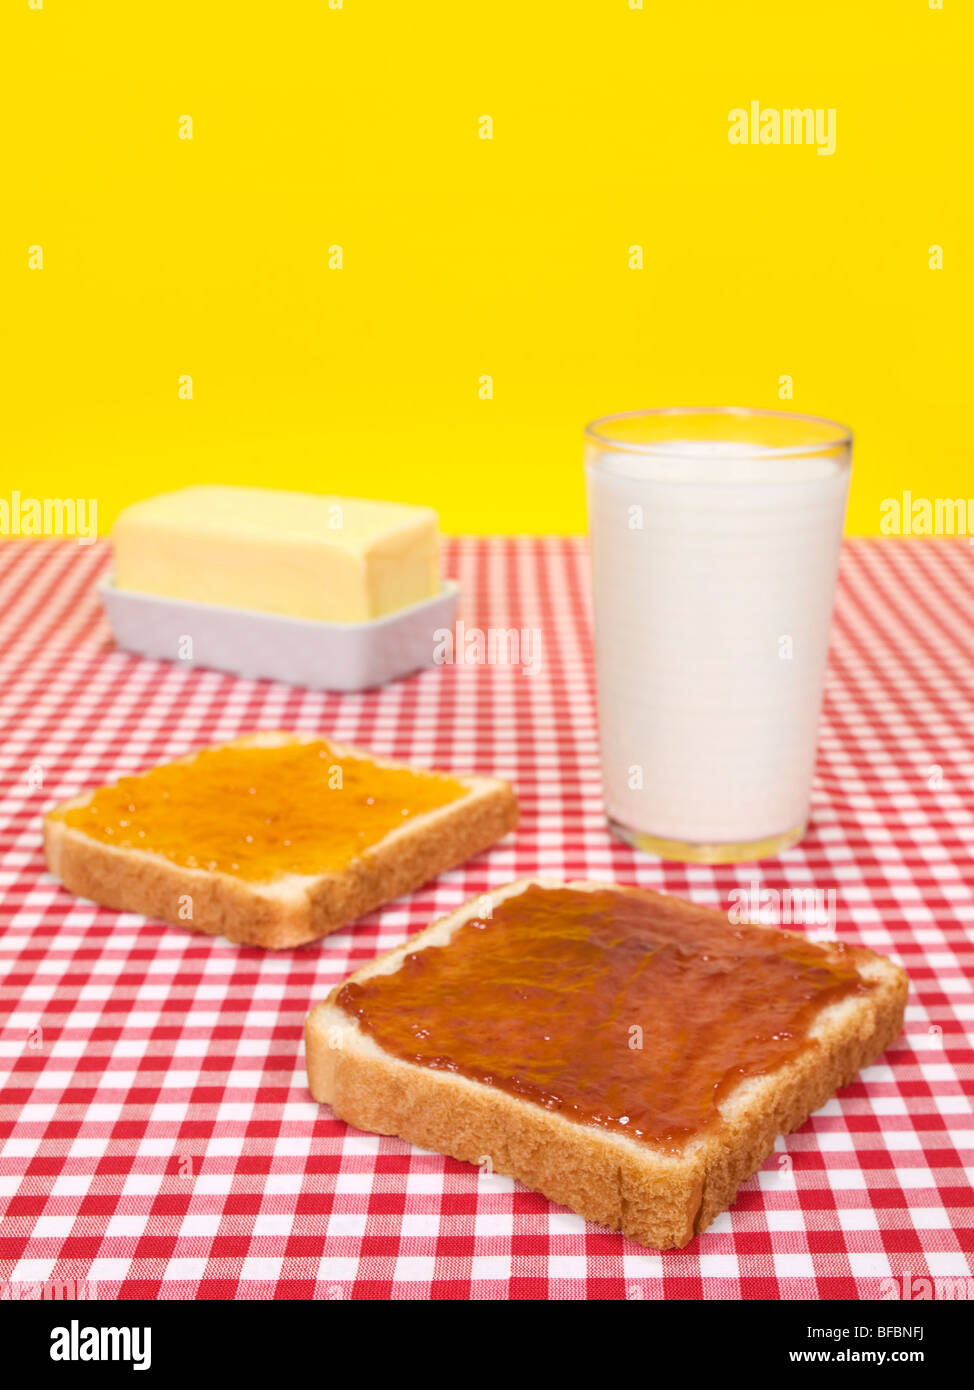 Two slices of bread spread with jam, a glass of milk and a butter stick. Stock Photo